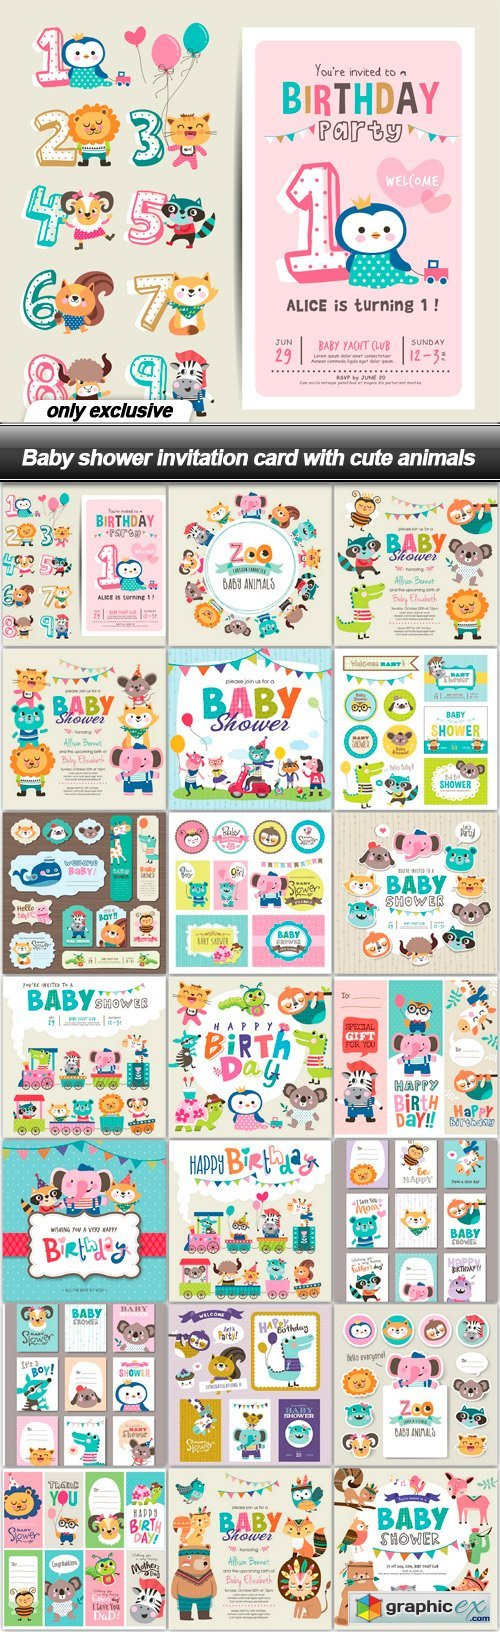 Baby shower invitation card with cute animals - 21 EPS